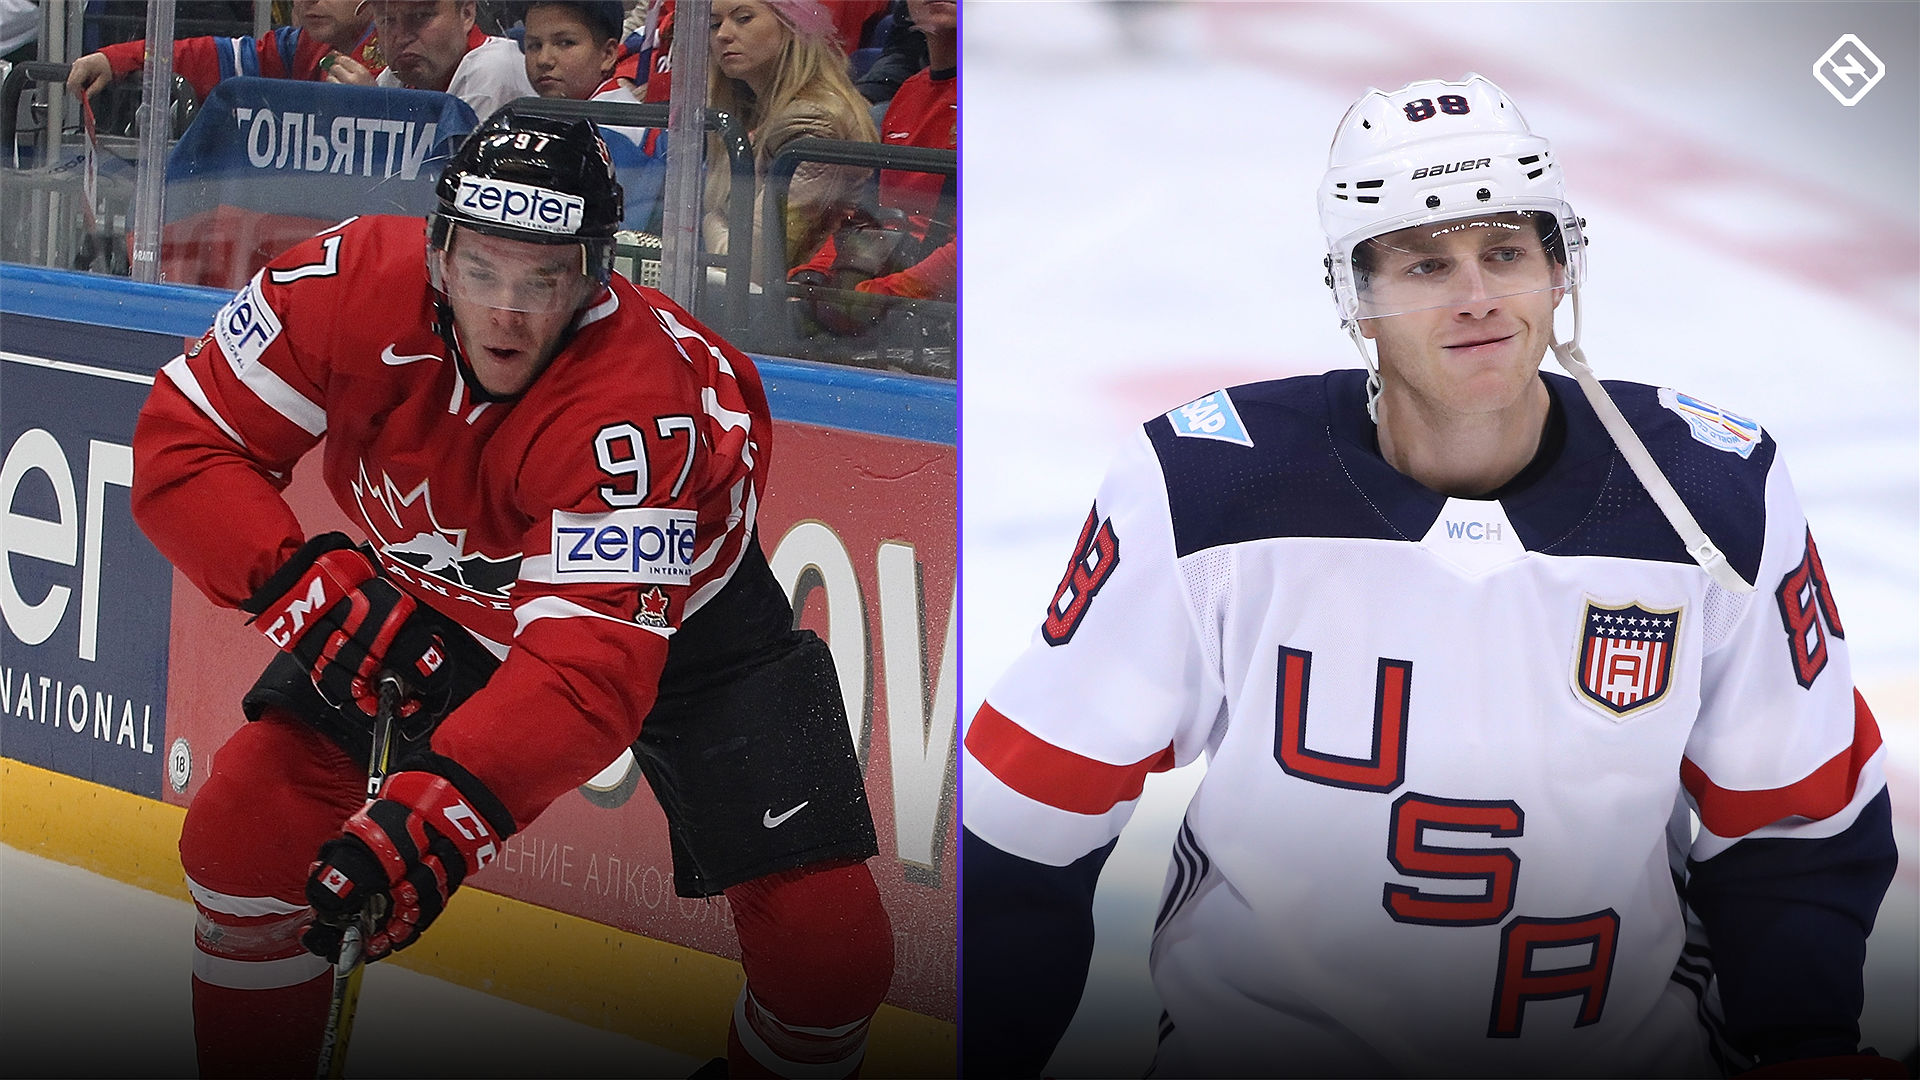 Worlds: IIHF World Championship 2018 - Live Score, Updates, Highlights From Canada-USA